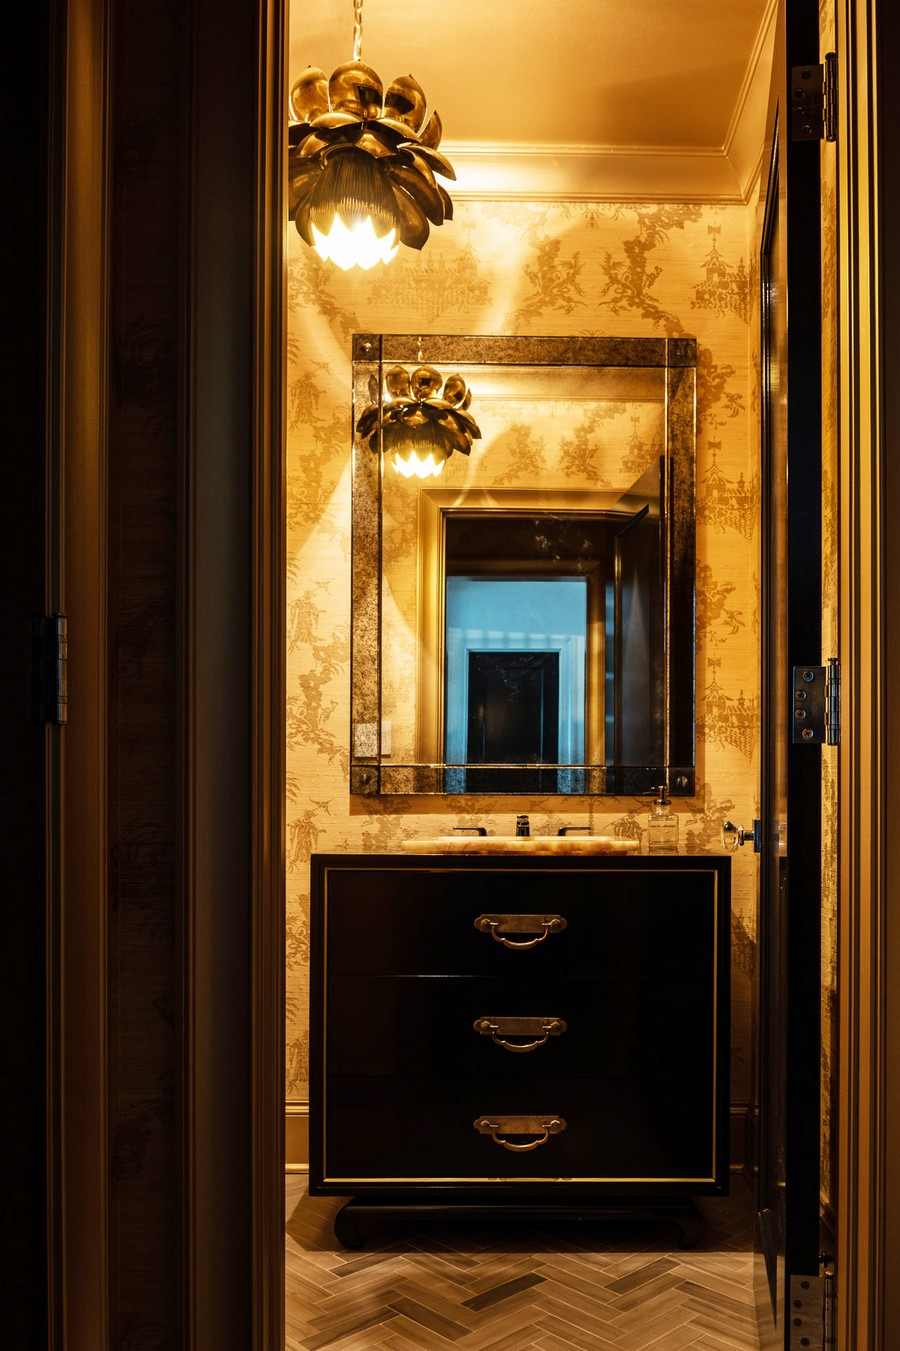 10 Luxury Design Ideas For Your Bathroom Design Project By SKIN Design luxury design 10 Luxury Design Ideas For Your Bathroom Design Project By SKIN Design 10 Luxury Design Ideas For Your Bathroom Design Project By SKIN Design